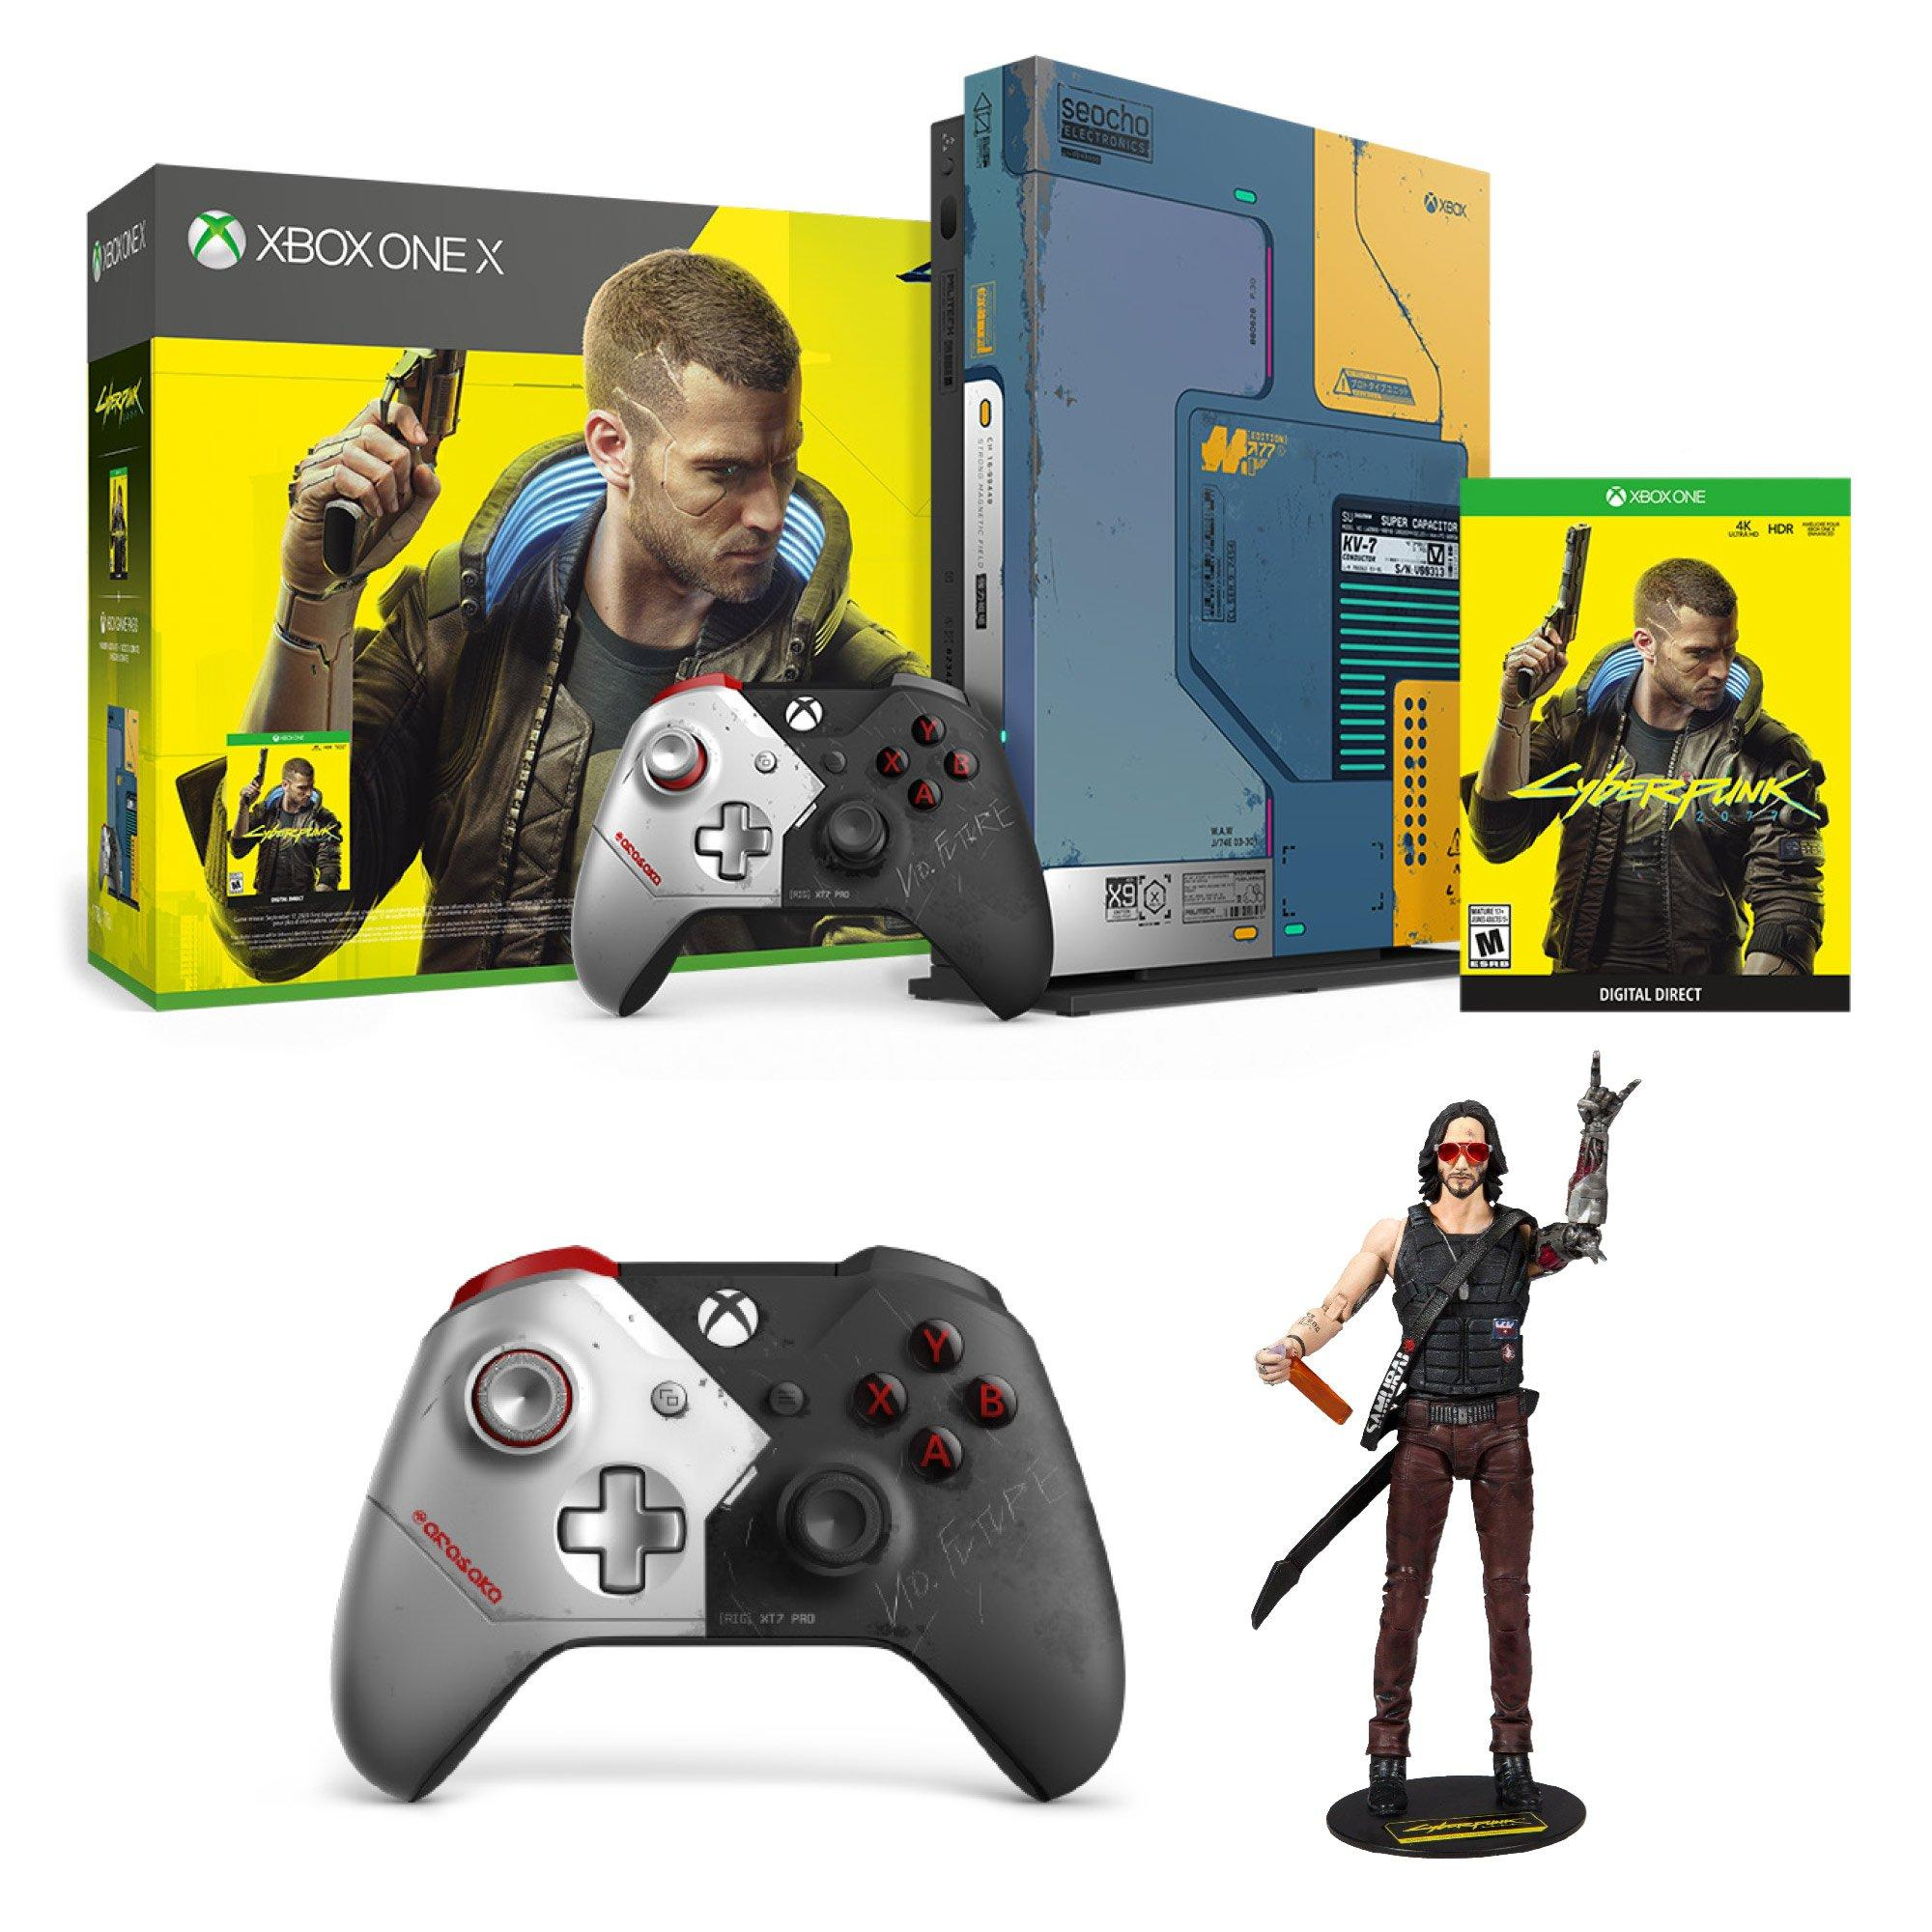 Xbox One X 1TB Cyberpunk 2077 Console + Wireless Controller + Figure